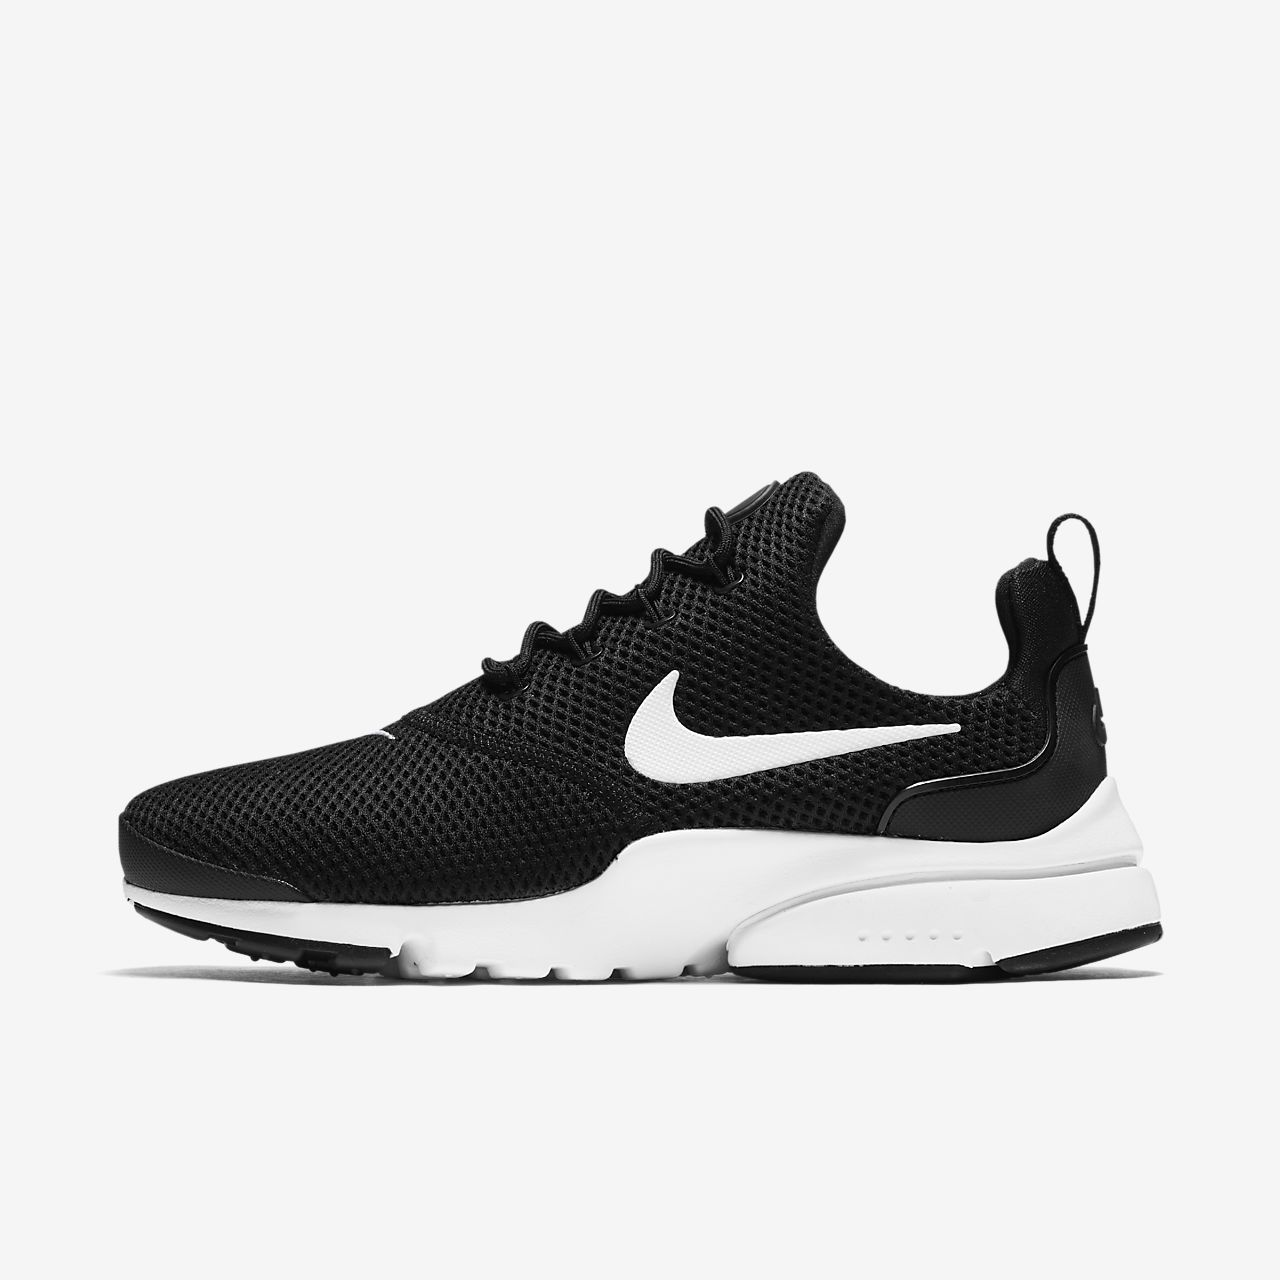 sports shoes 651fe 551ef ... Chaussure Nike Presto Fly pour Femme